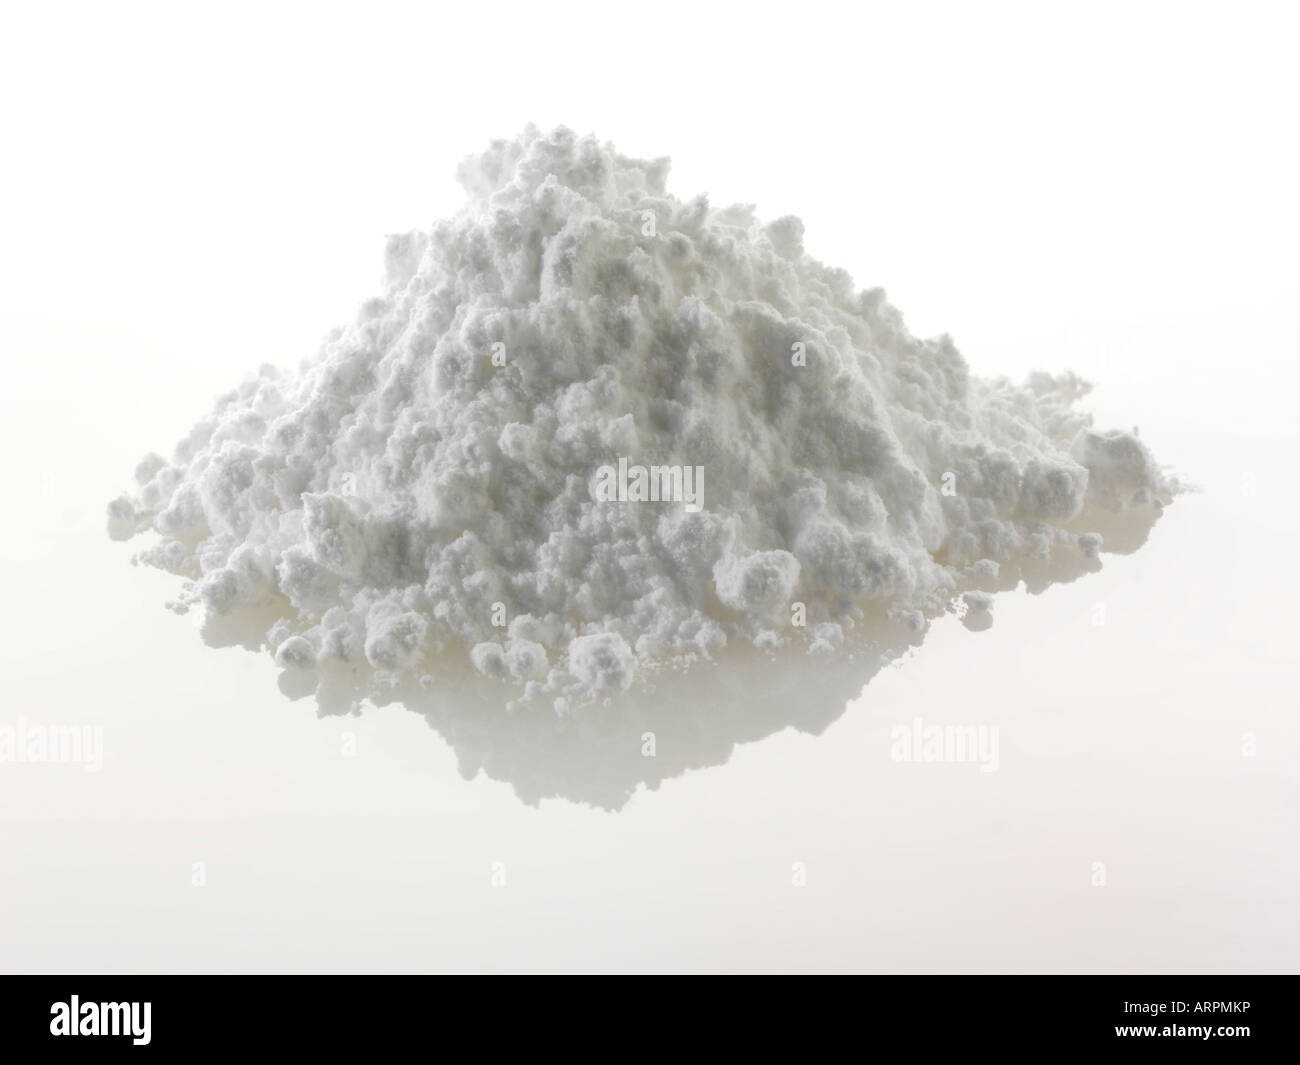 Icing sugar against a white background to cut out - Stock Image